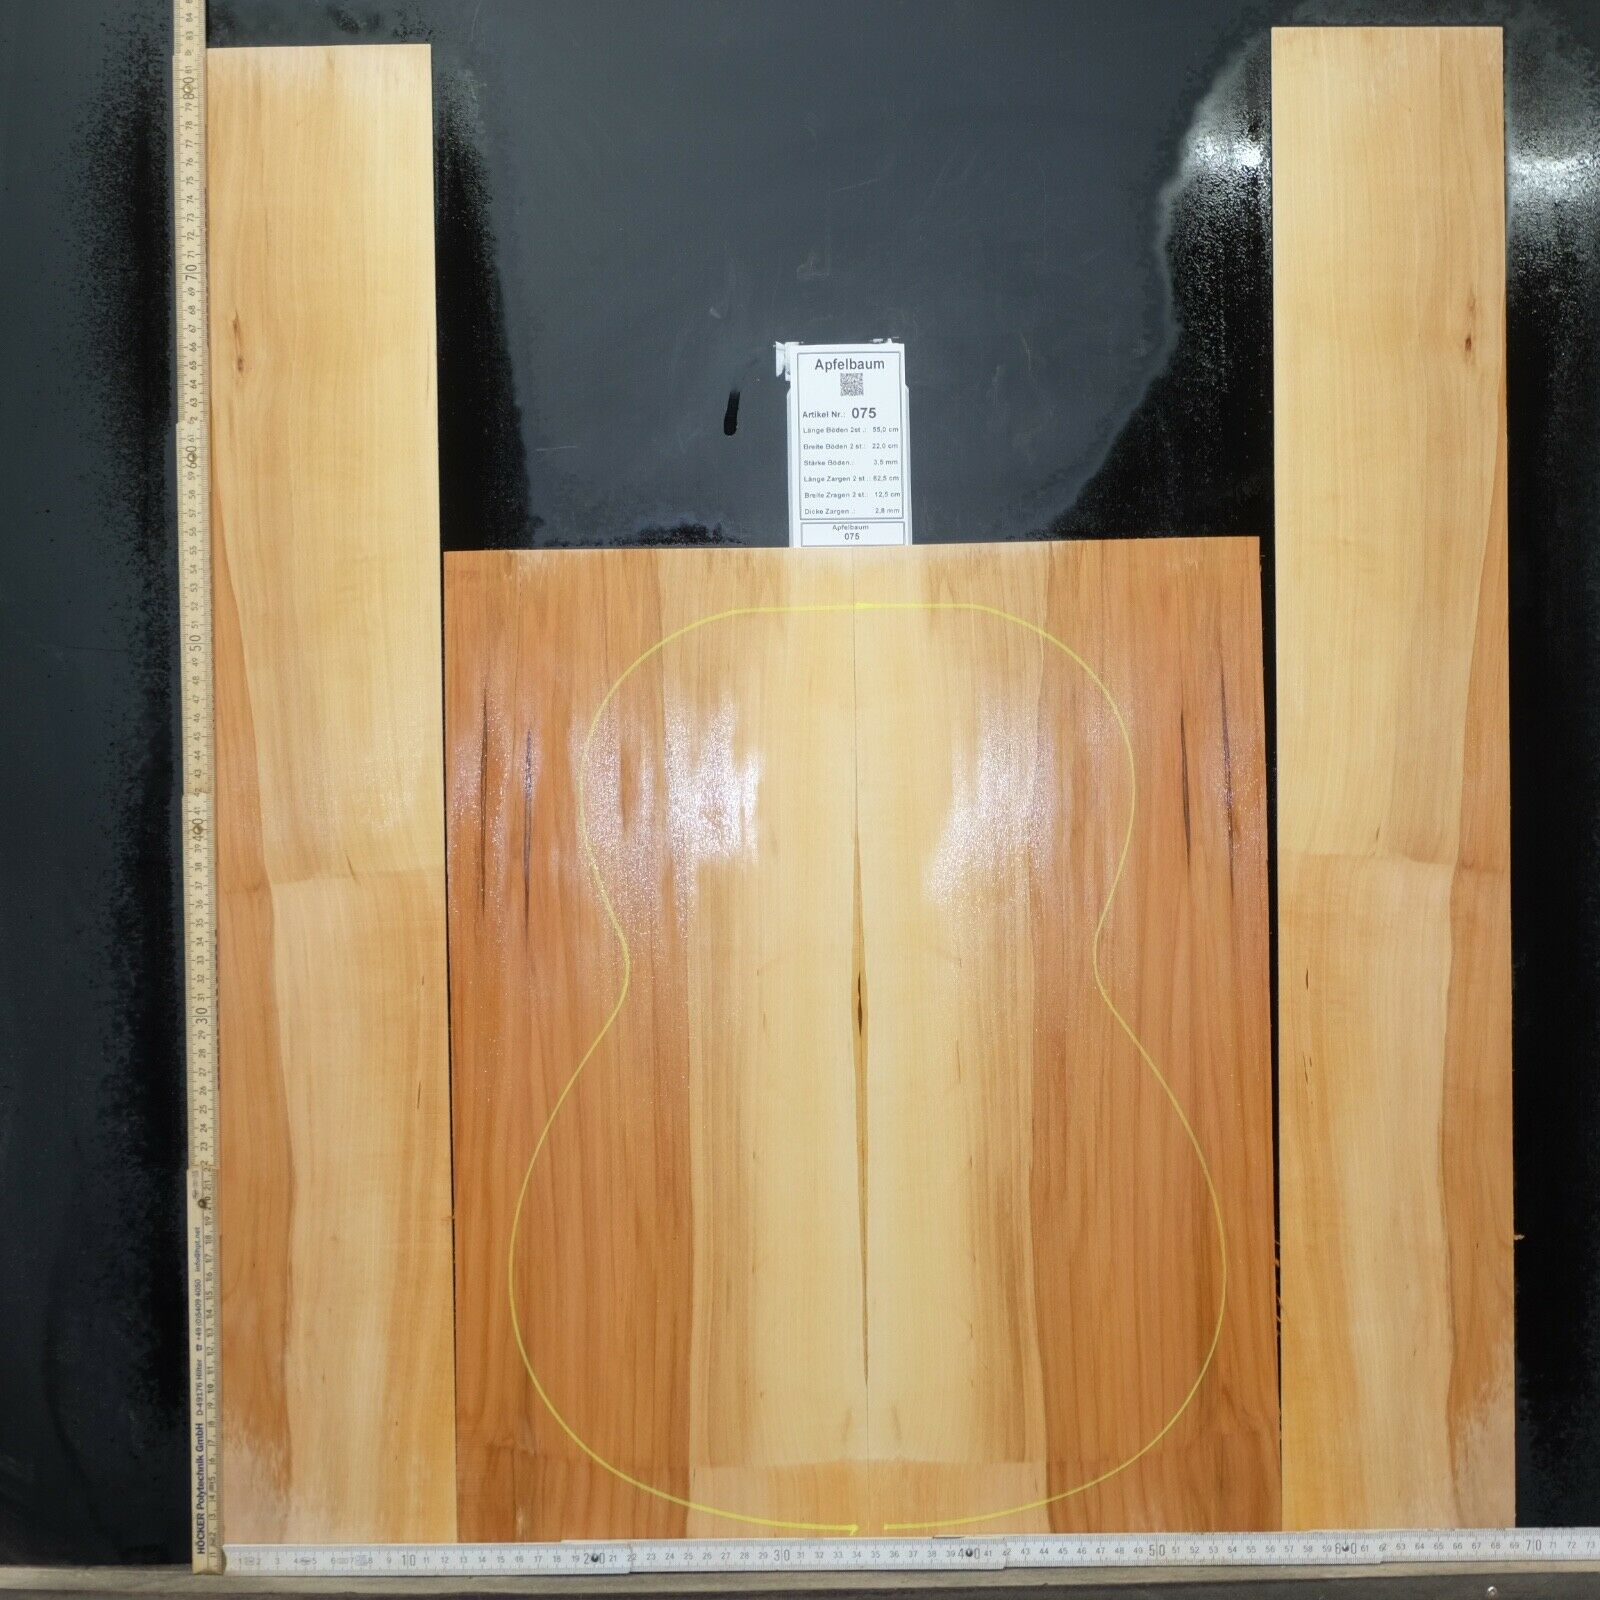 Tonewood Apfelbaum Apfel Tonholz Guitar Builder Acoustic Backs and sides SET 075